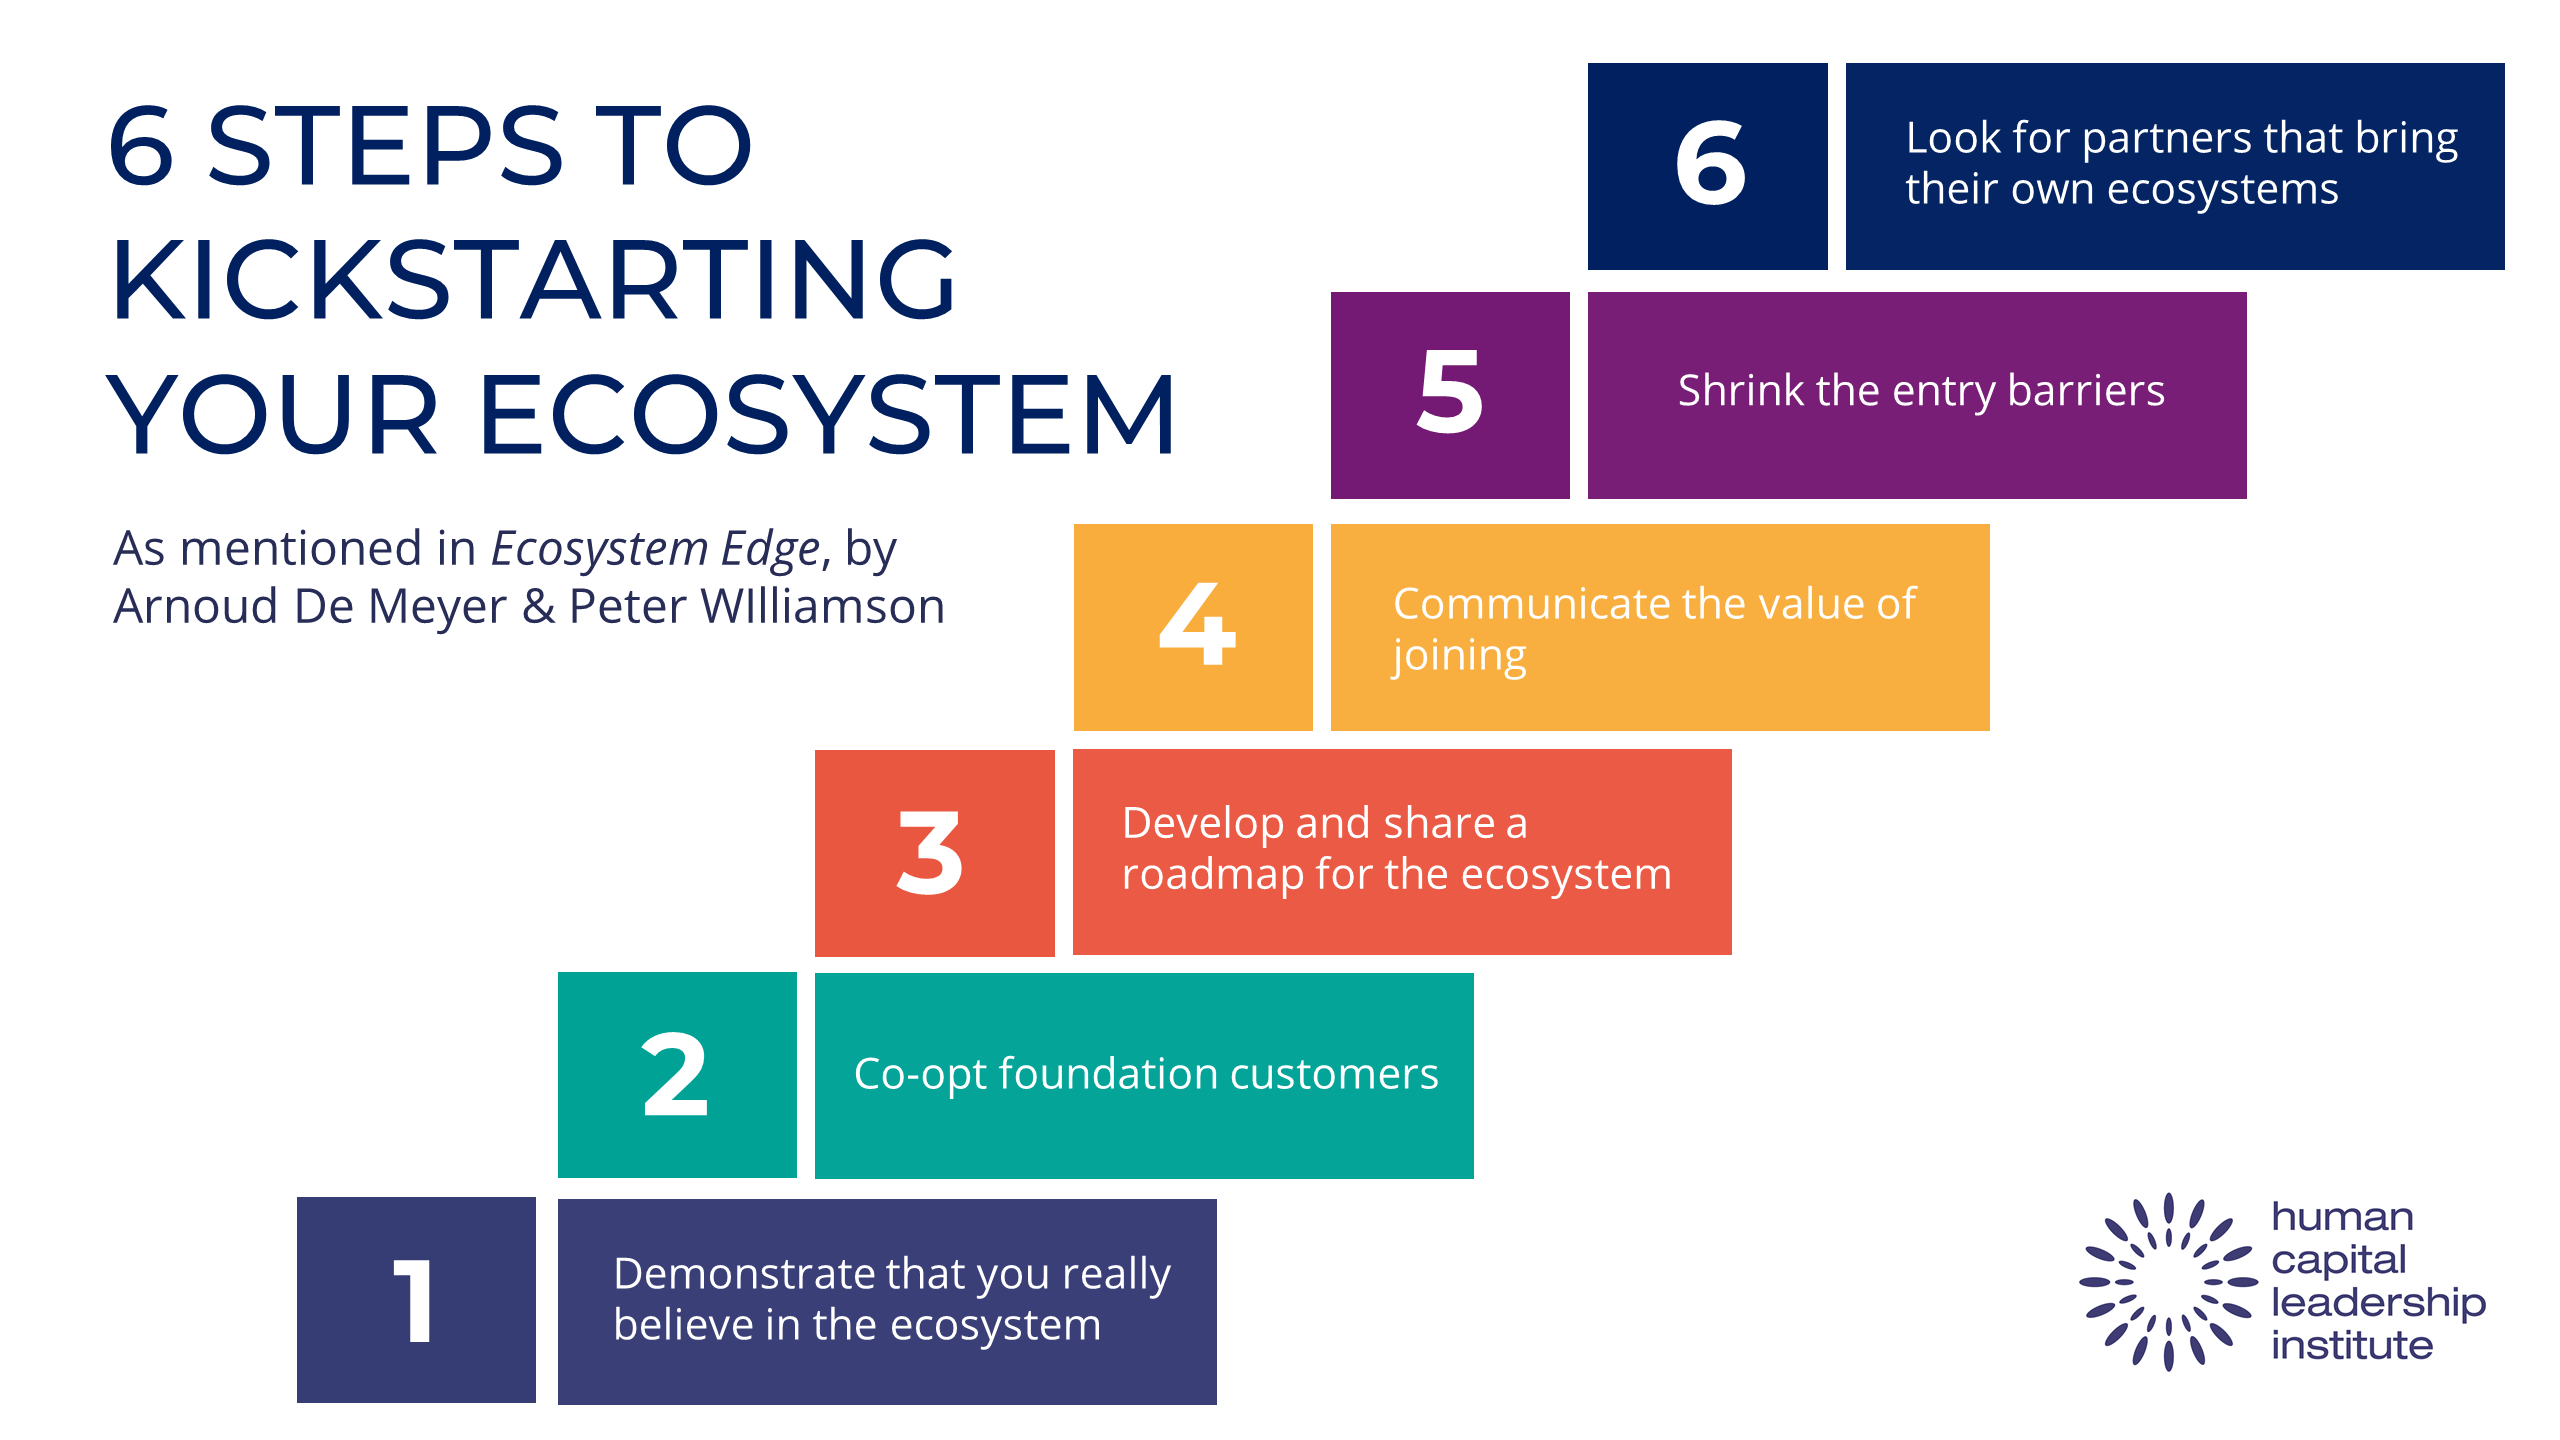 6 Steps to Kickstarting Your Ecosystem